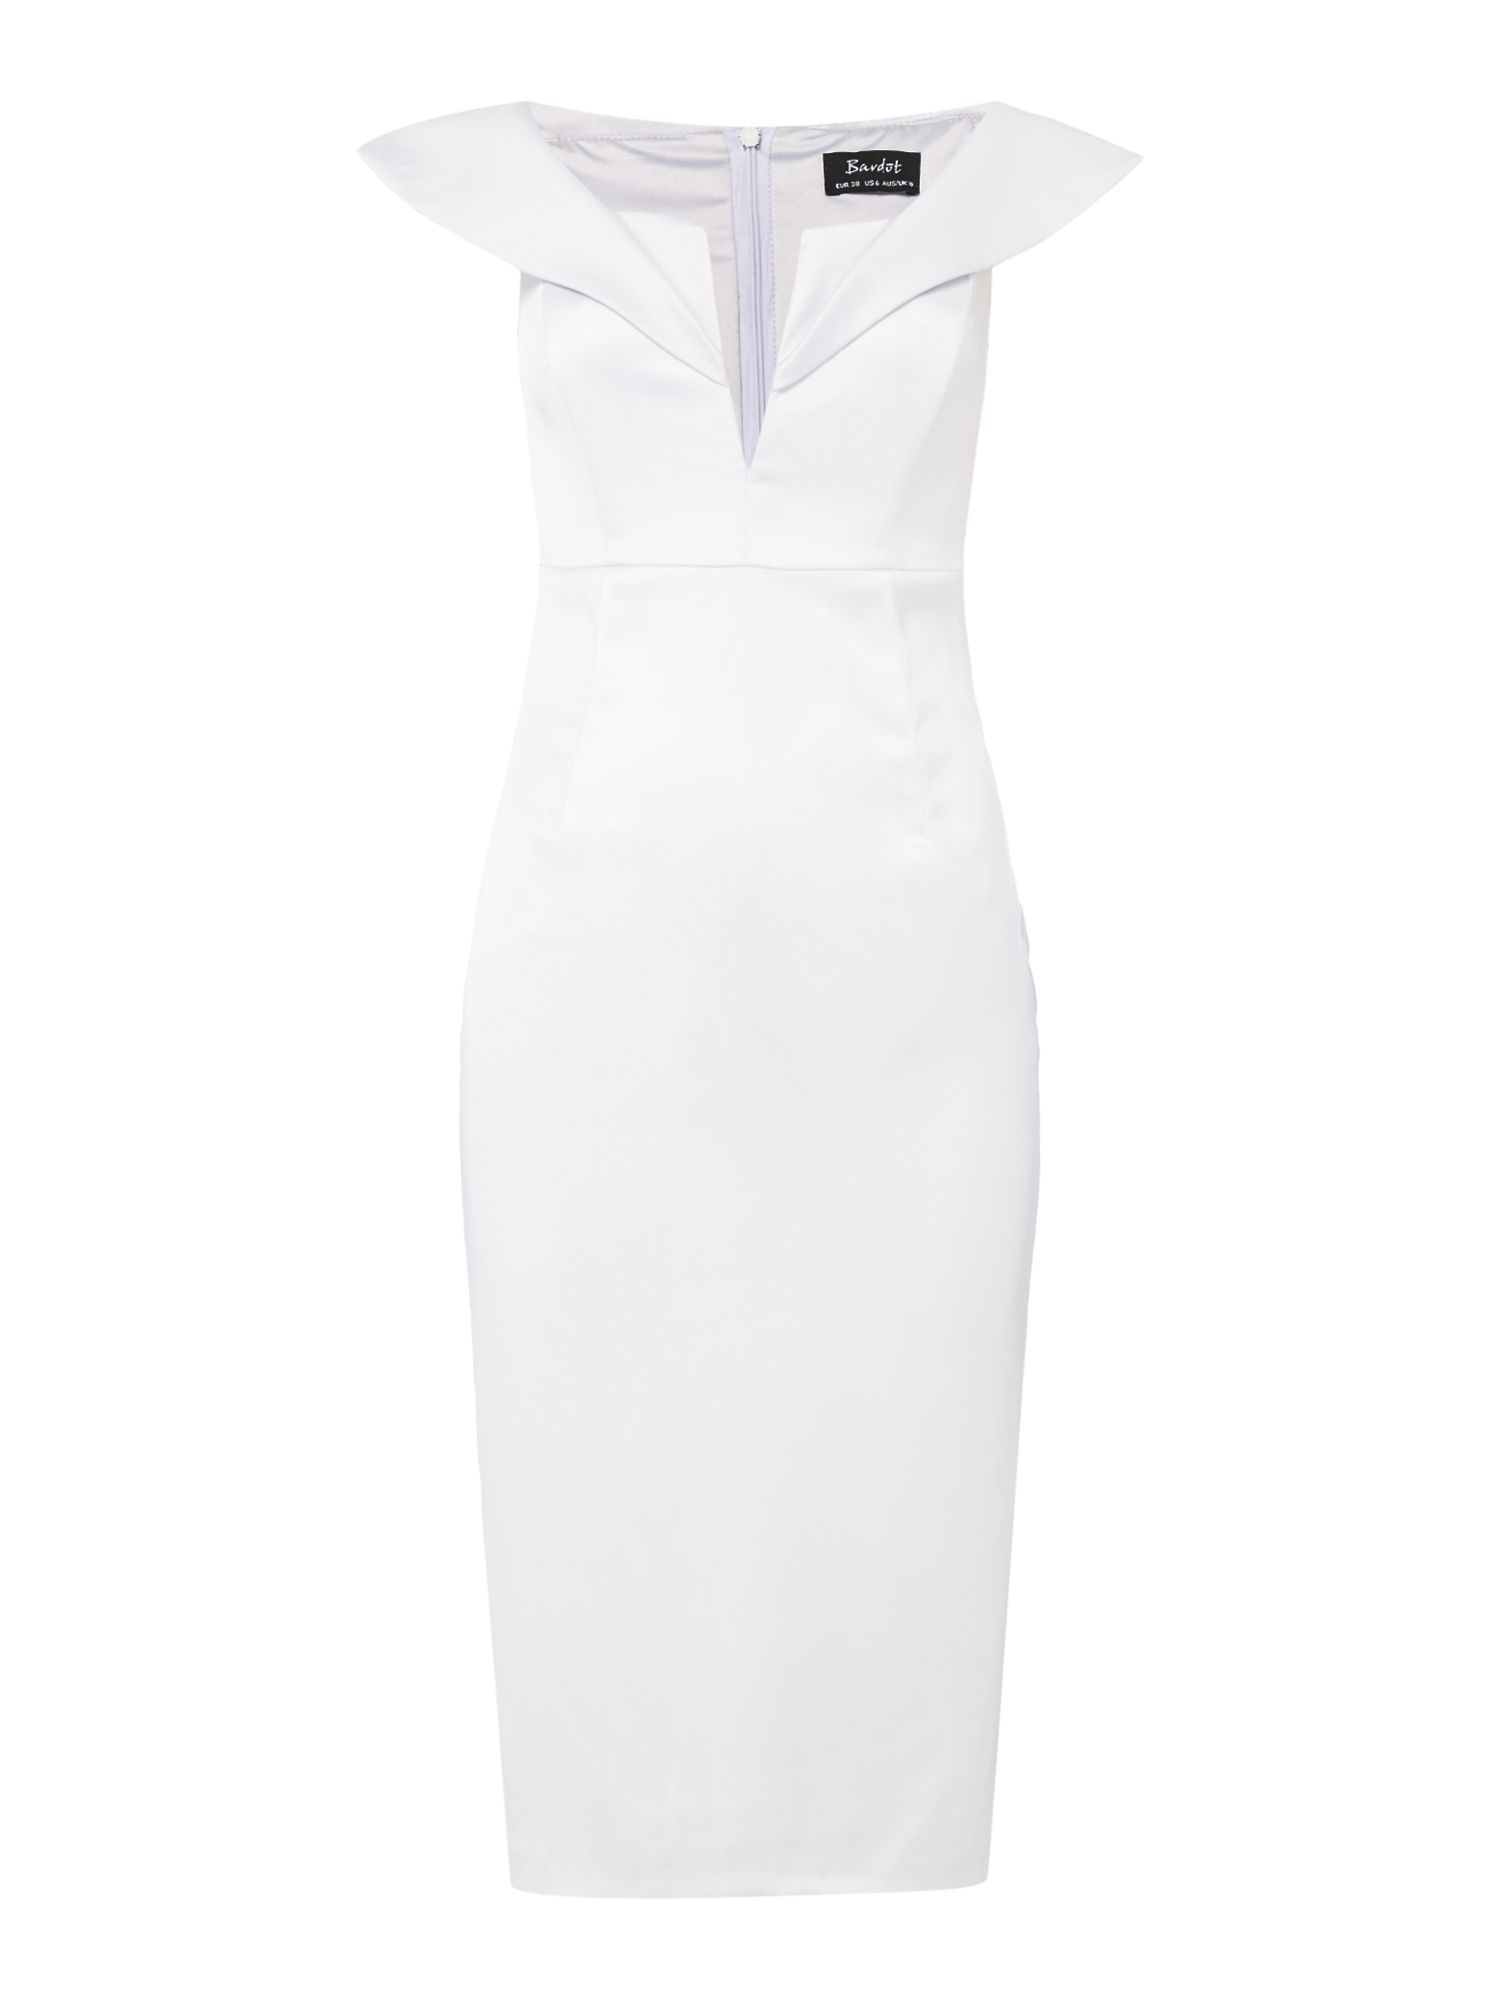 Bardot Luna bardot neckline satin bodycon dress, Silver